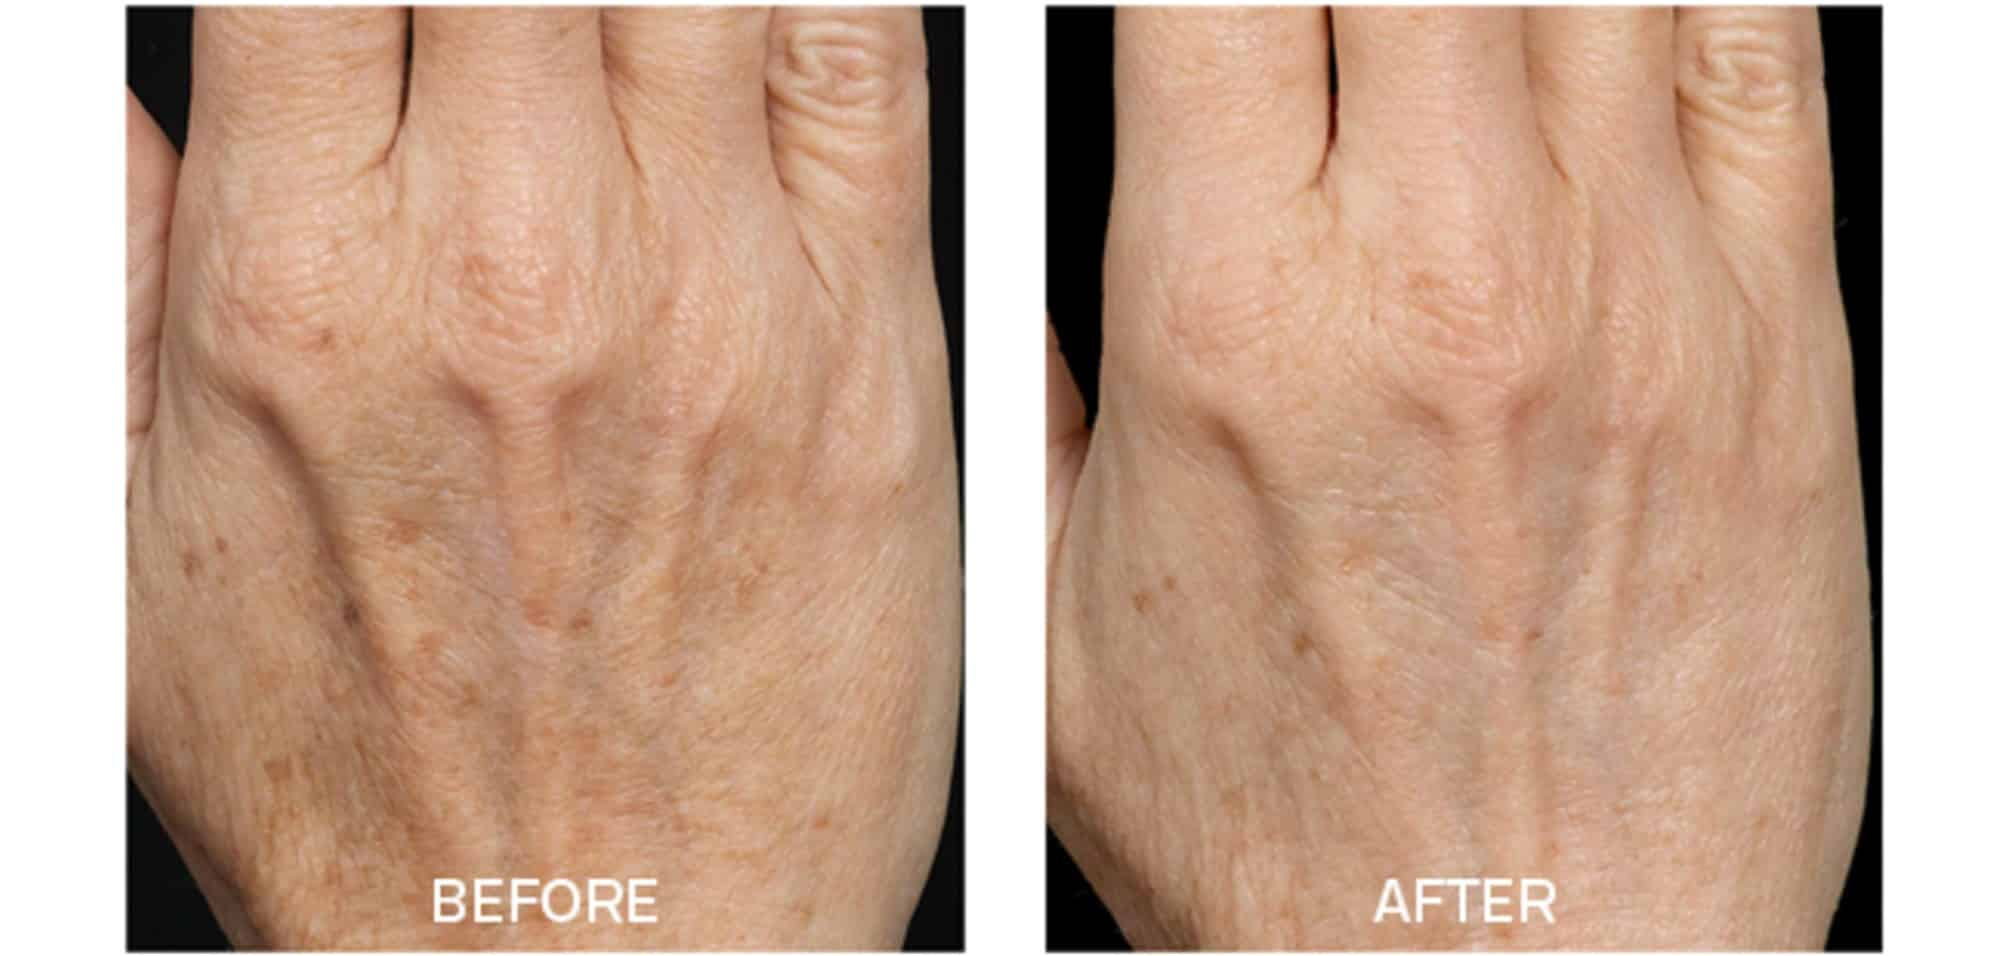 Fraxel for Aging Hands